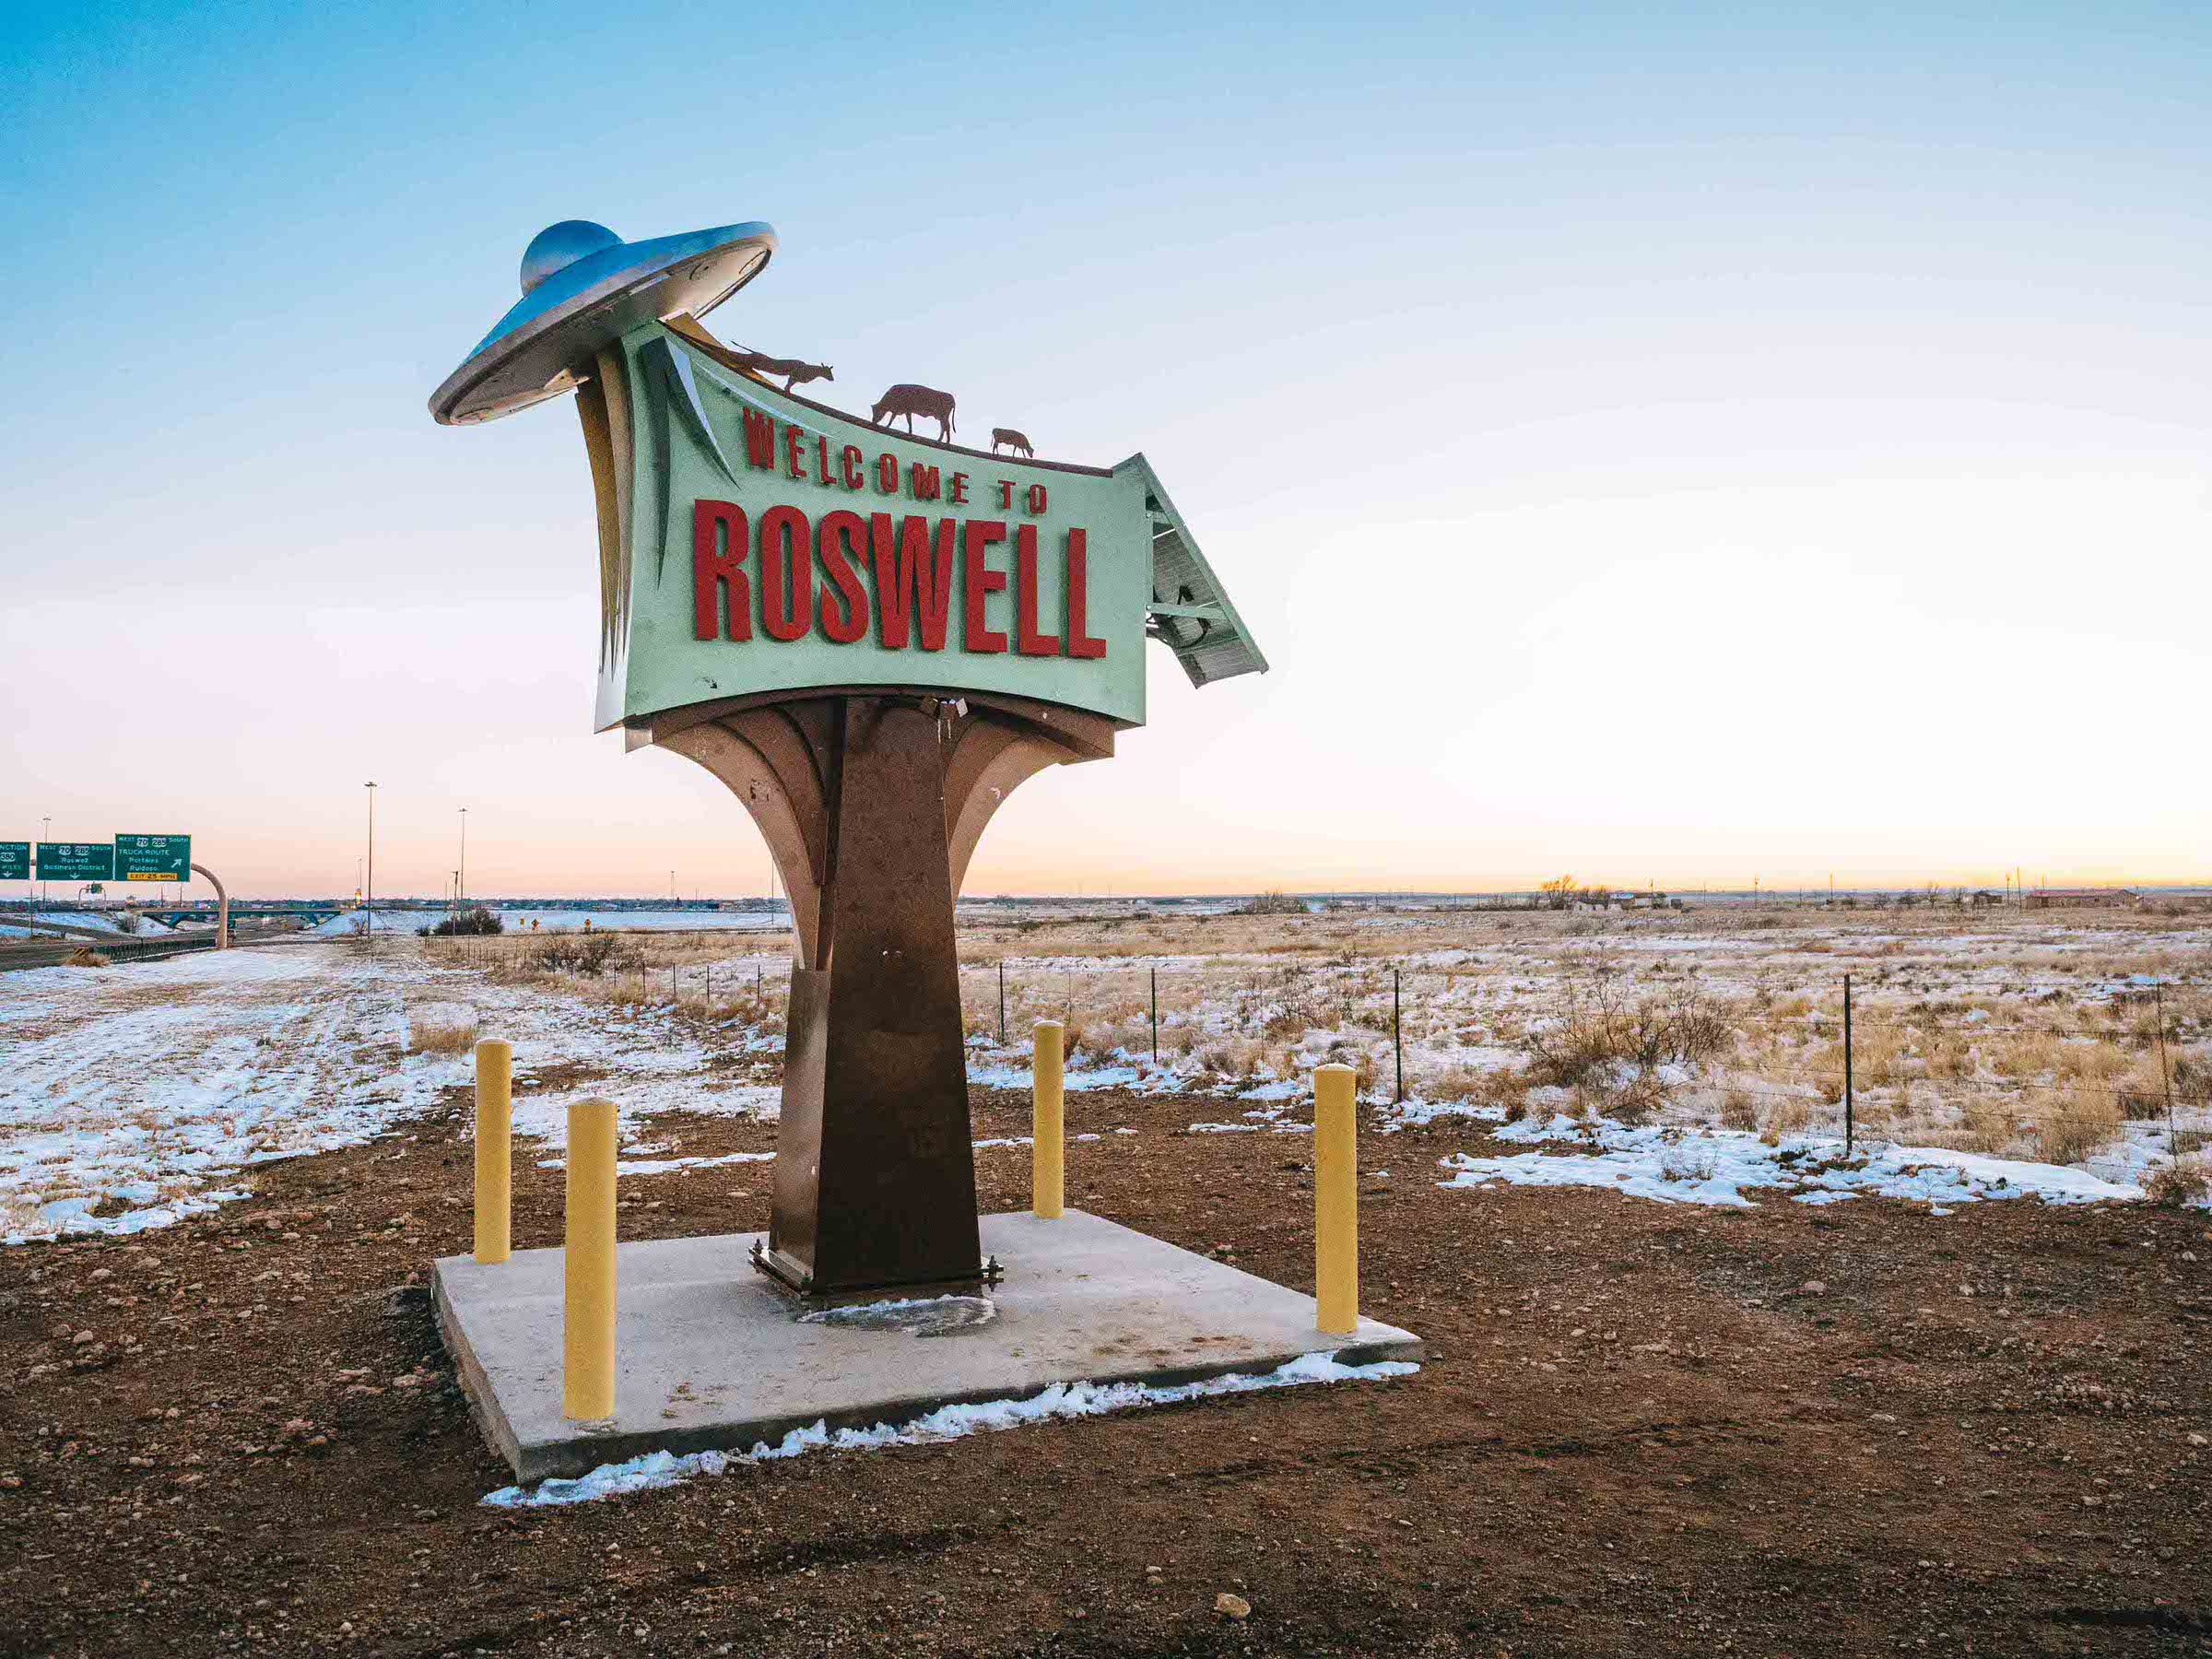 Check out the many things to do in Roswell NM in order to learn about the alleged UFO crash of 1947 that stunned the country. Home to the alien museum plus a lot of people who really care about space, Roswell is a perfect town to visit for a day trip in the Southwest. #roswellnewmexico #aliens #traveldestinations #roswellnewmexicothingstodoin #newmexicotravel